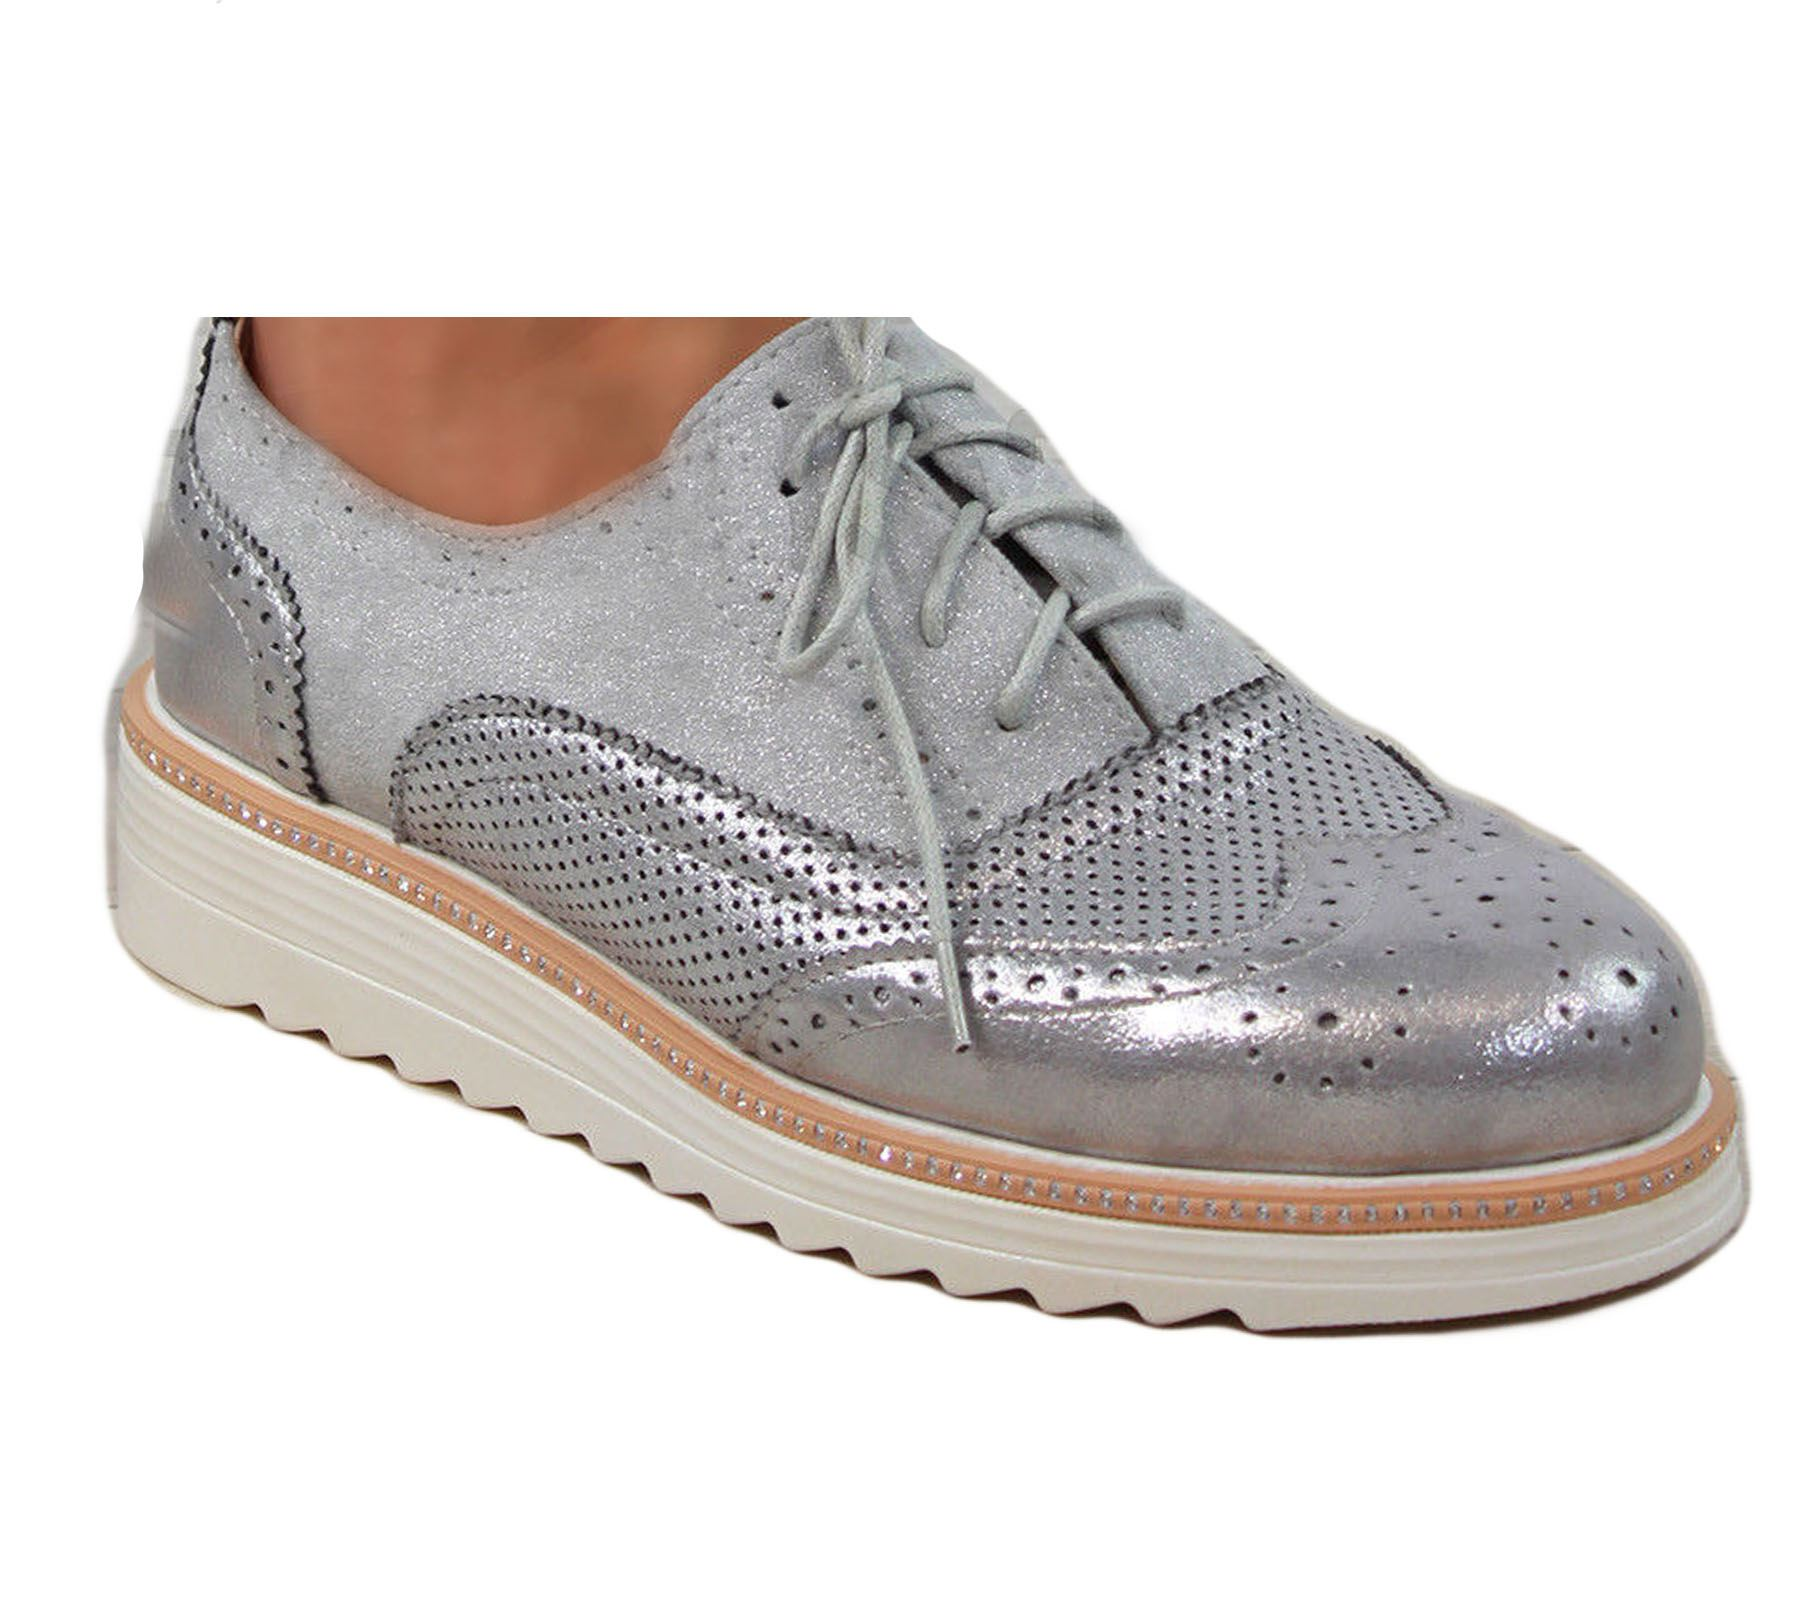 Ladies-Brogue-Lace-Up-Shoes-Womens-Oxford-Smart-Office-Loafers-Shoes miniatura 23